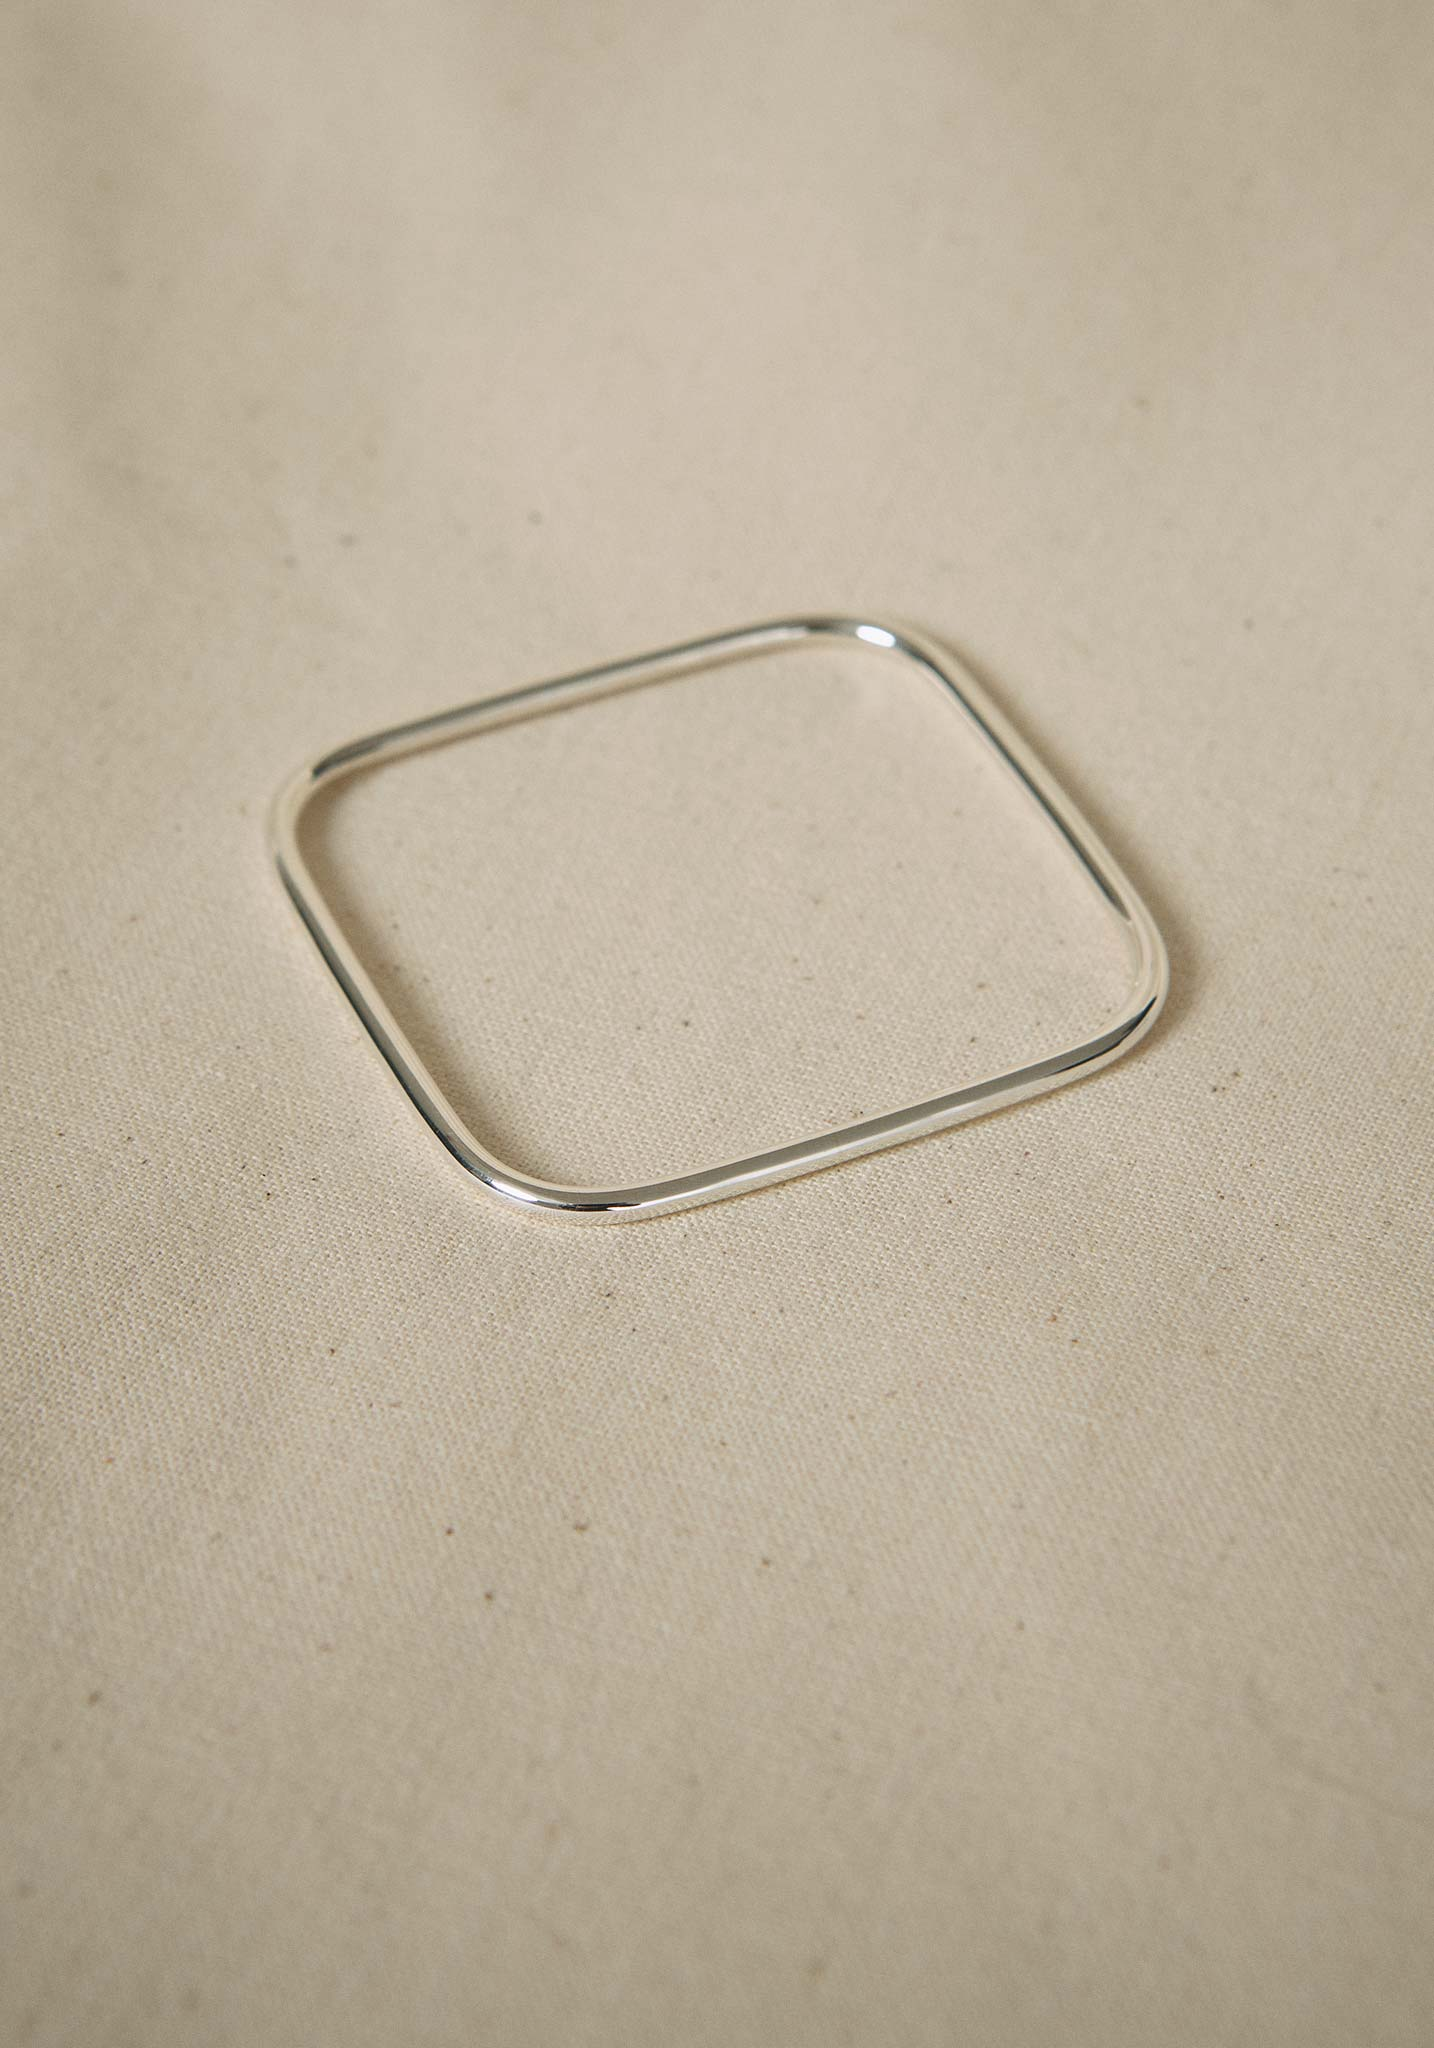 Zohra Rahman, Sterling Silver Square Churi Bangle